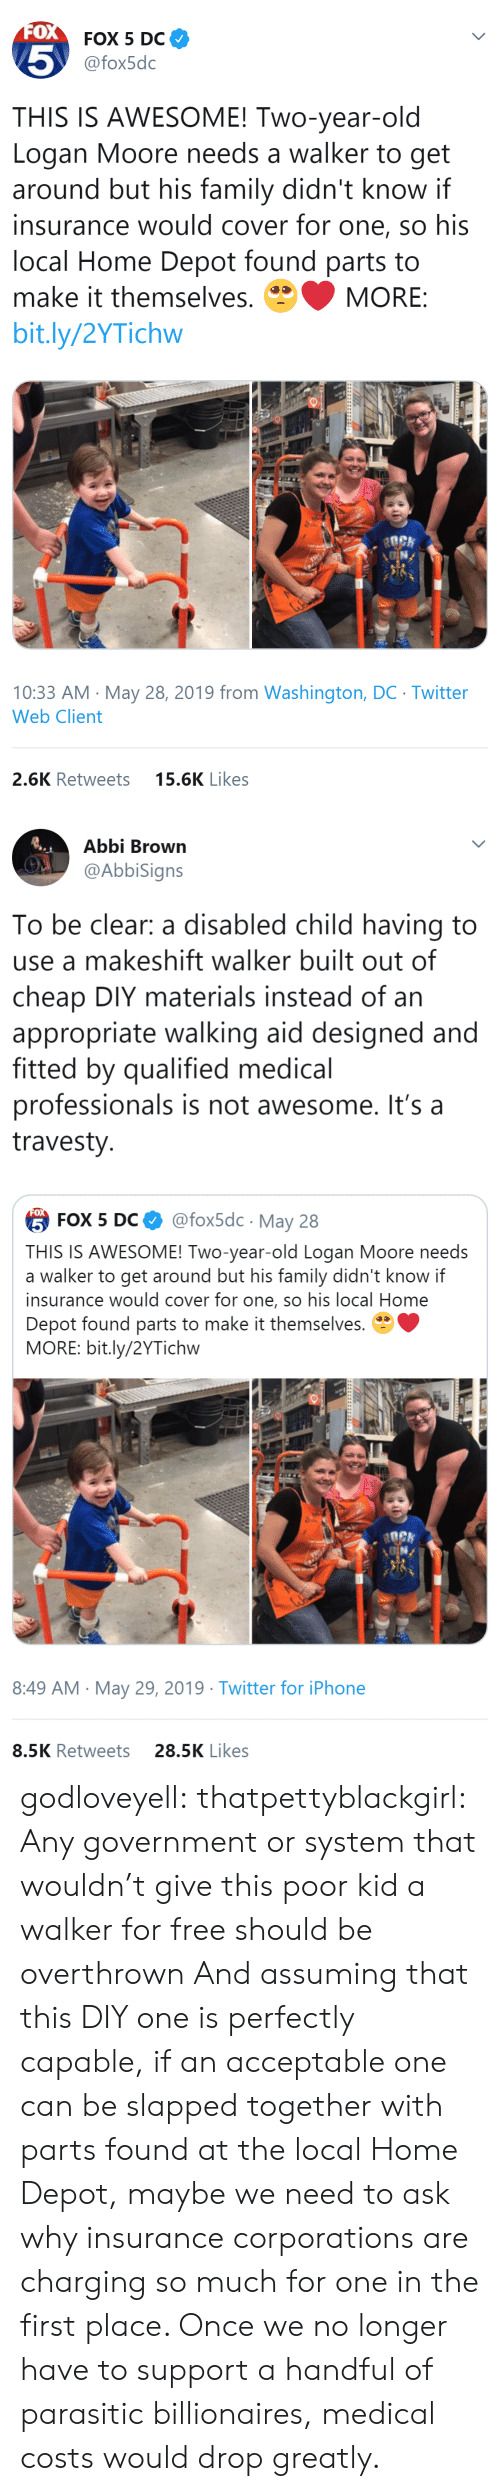 Qualified: FOX  FOX 5 DC  5  @fox5dc  THIS IS AWESOME! Two-year-old  Logan Moore needs a walker to get  around but his family didn't know if  insurance would cover for one, so his  local Home Depot found parts to  make it themselves.  MORE:  bit.ly/2YTichw  10:33 AM May 28, 2019 from Washington, DC Twitter  Web Client  15.6K Likes  2.6K Retweets   Abbi Brown  @AbbiSigns  To be clear: a disabled child having to  use a makeshift walker built out of  cheap DIY materials instead of an  appropriate walking aid designed and  fitted by qualified medical  professionals is not awesome. It's a  travesty  FOX  @fox5dc May 28  5 FOX 5 DС  THIS IS AWESOME! Two-year-old Logan Moore needs  a walker to get around but his family didn't know if  insurance would cover for one, so his local Home  Depot found parts to make it themselves.  MORE: bit.ly/2YTichw  8:49 AM May 29, 2019 Twitter for iPhone  28.5K Likes  8.5K Retweets godloveyell:  thatpettyblackgirl:  Any government or system that wouldn't give this poor kid a walker for free should be overthrown   And assuming that this DIY one is perfectly capable, if an acceptable one can be slapped together with parts found at the local Home Depot, maybe we need to ask why insurance corporations are charging so much for one in the first place.  Once we no longer have to support a handful of parasitic billionaires, medical costs would drop greatly.